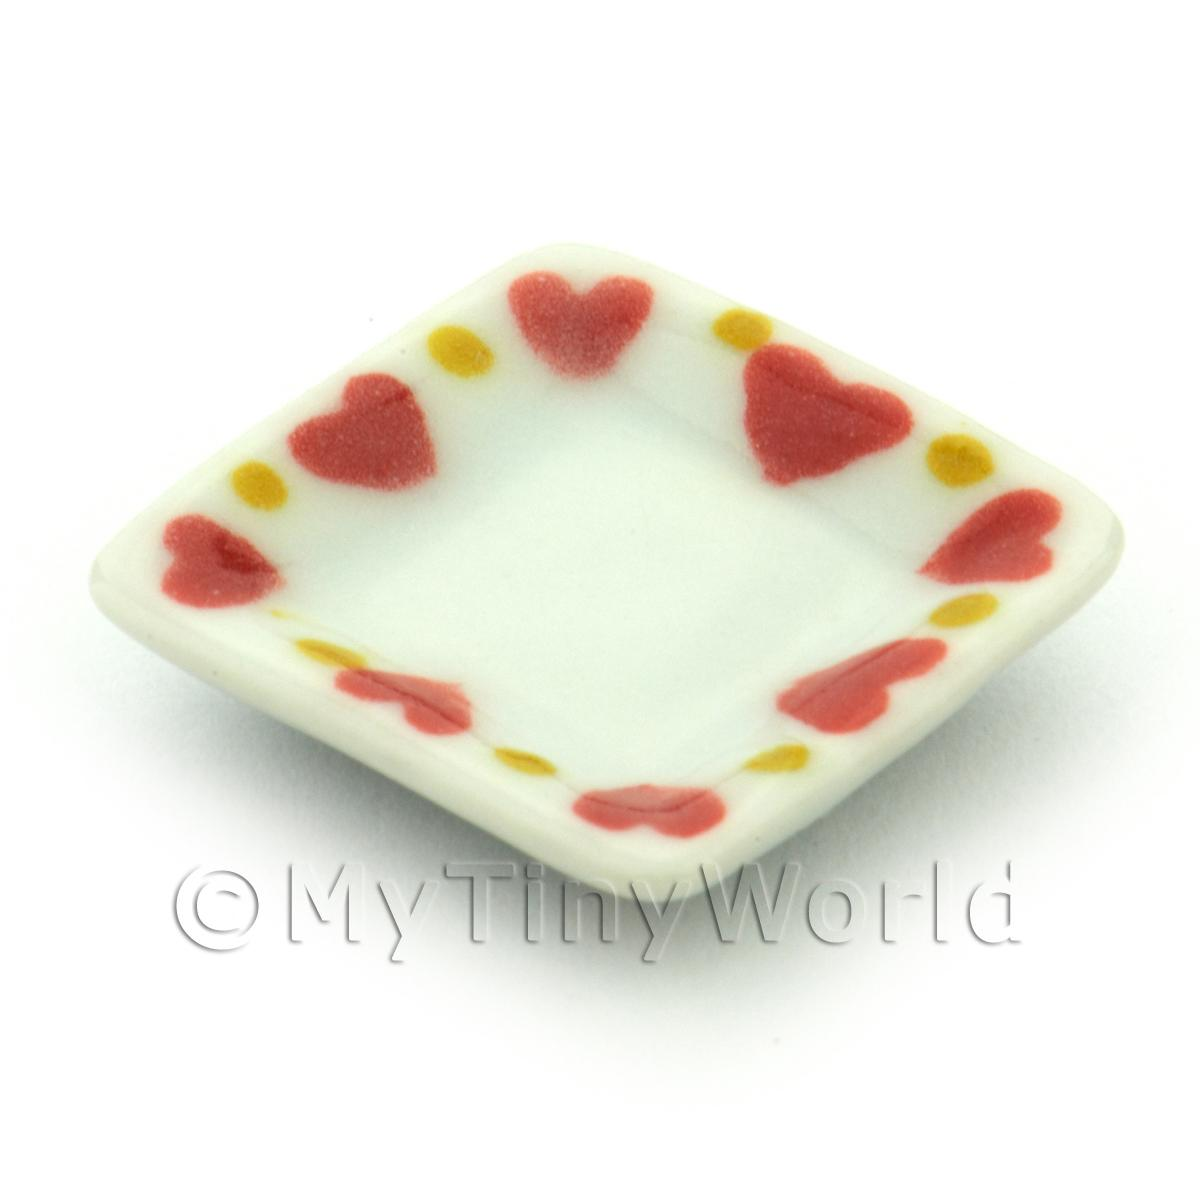 Dolls House Miniature Heart Pattern Ceramic 21mm Square Plate